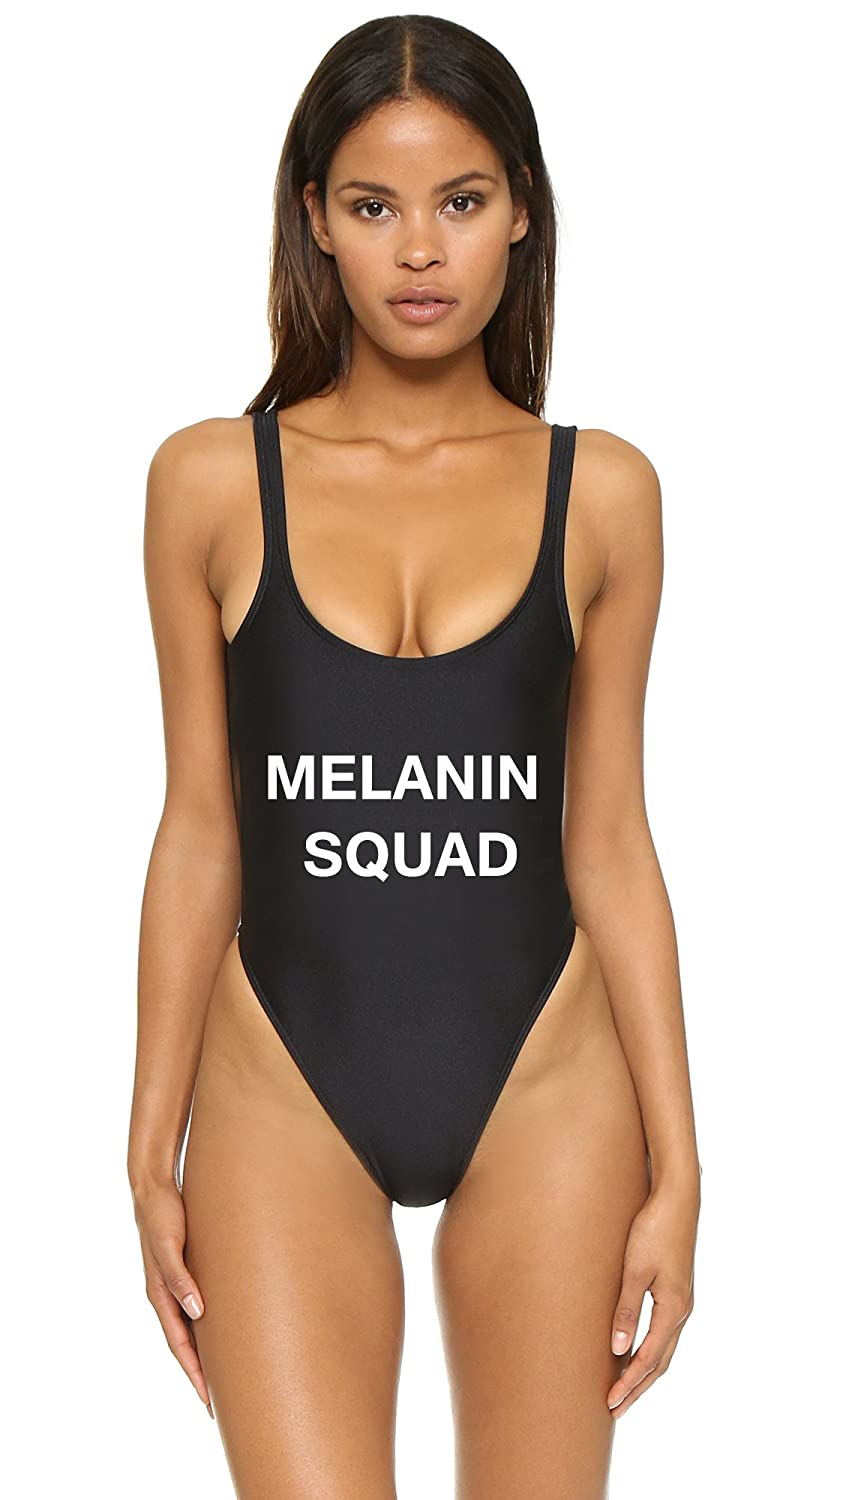 832d209aa6969 ShopBridesmaids Melanin Squad One-Piece Suit at Amazon Women's Clothing  store: